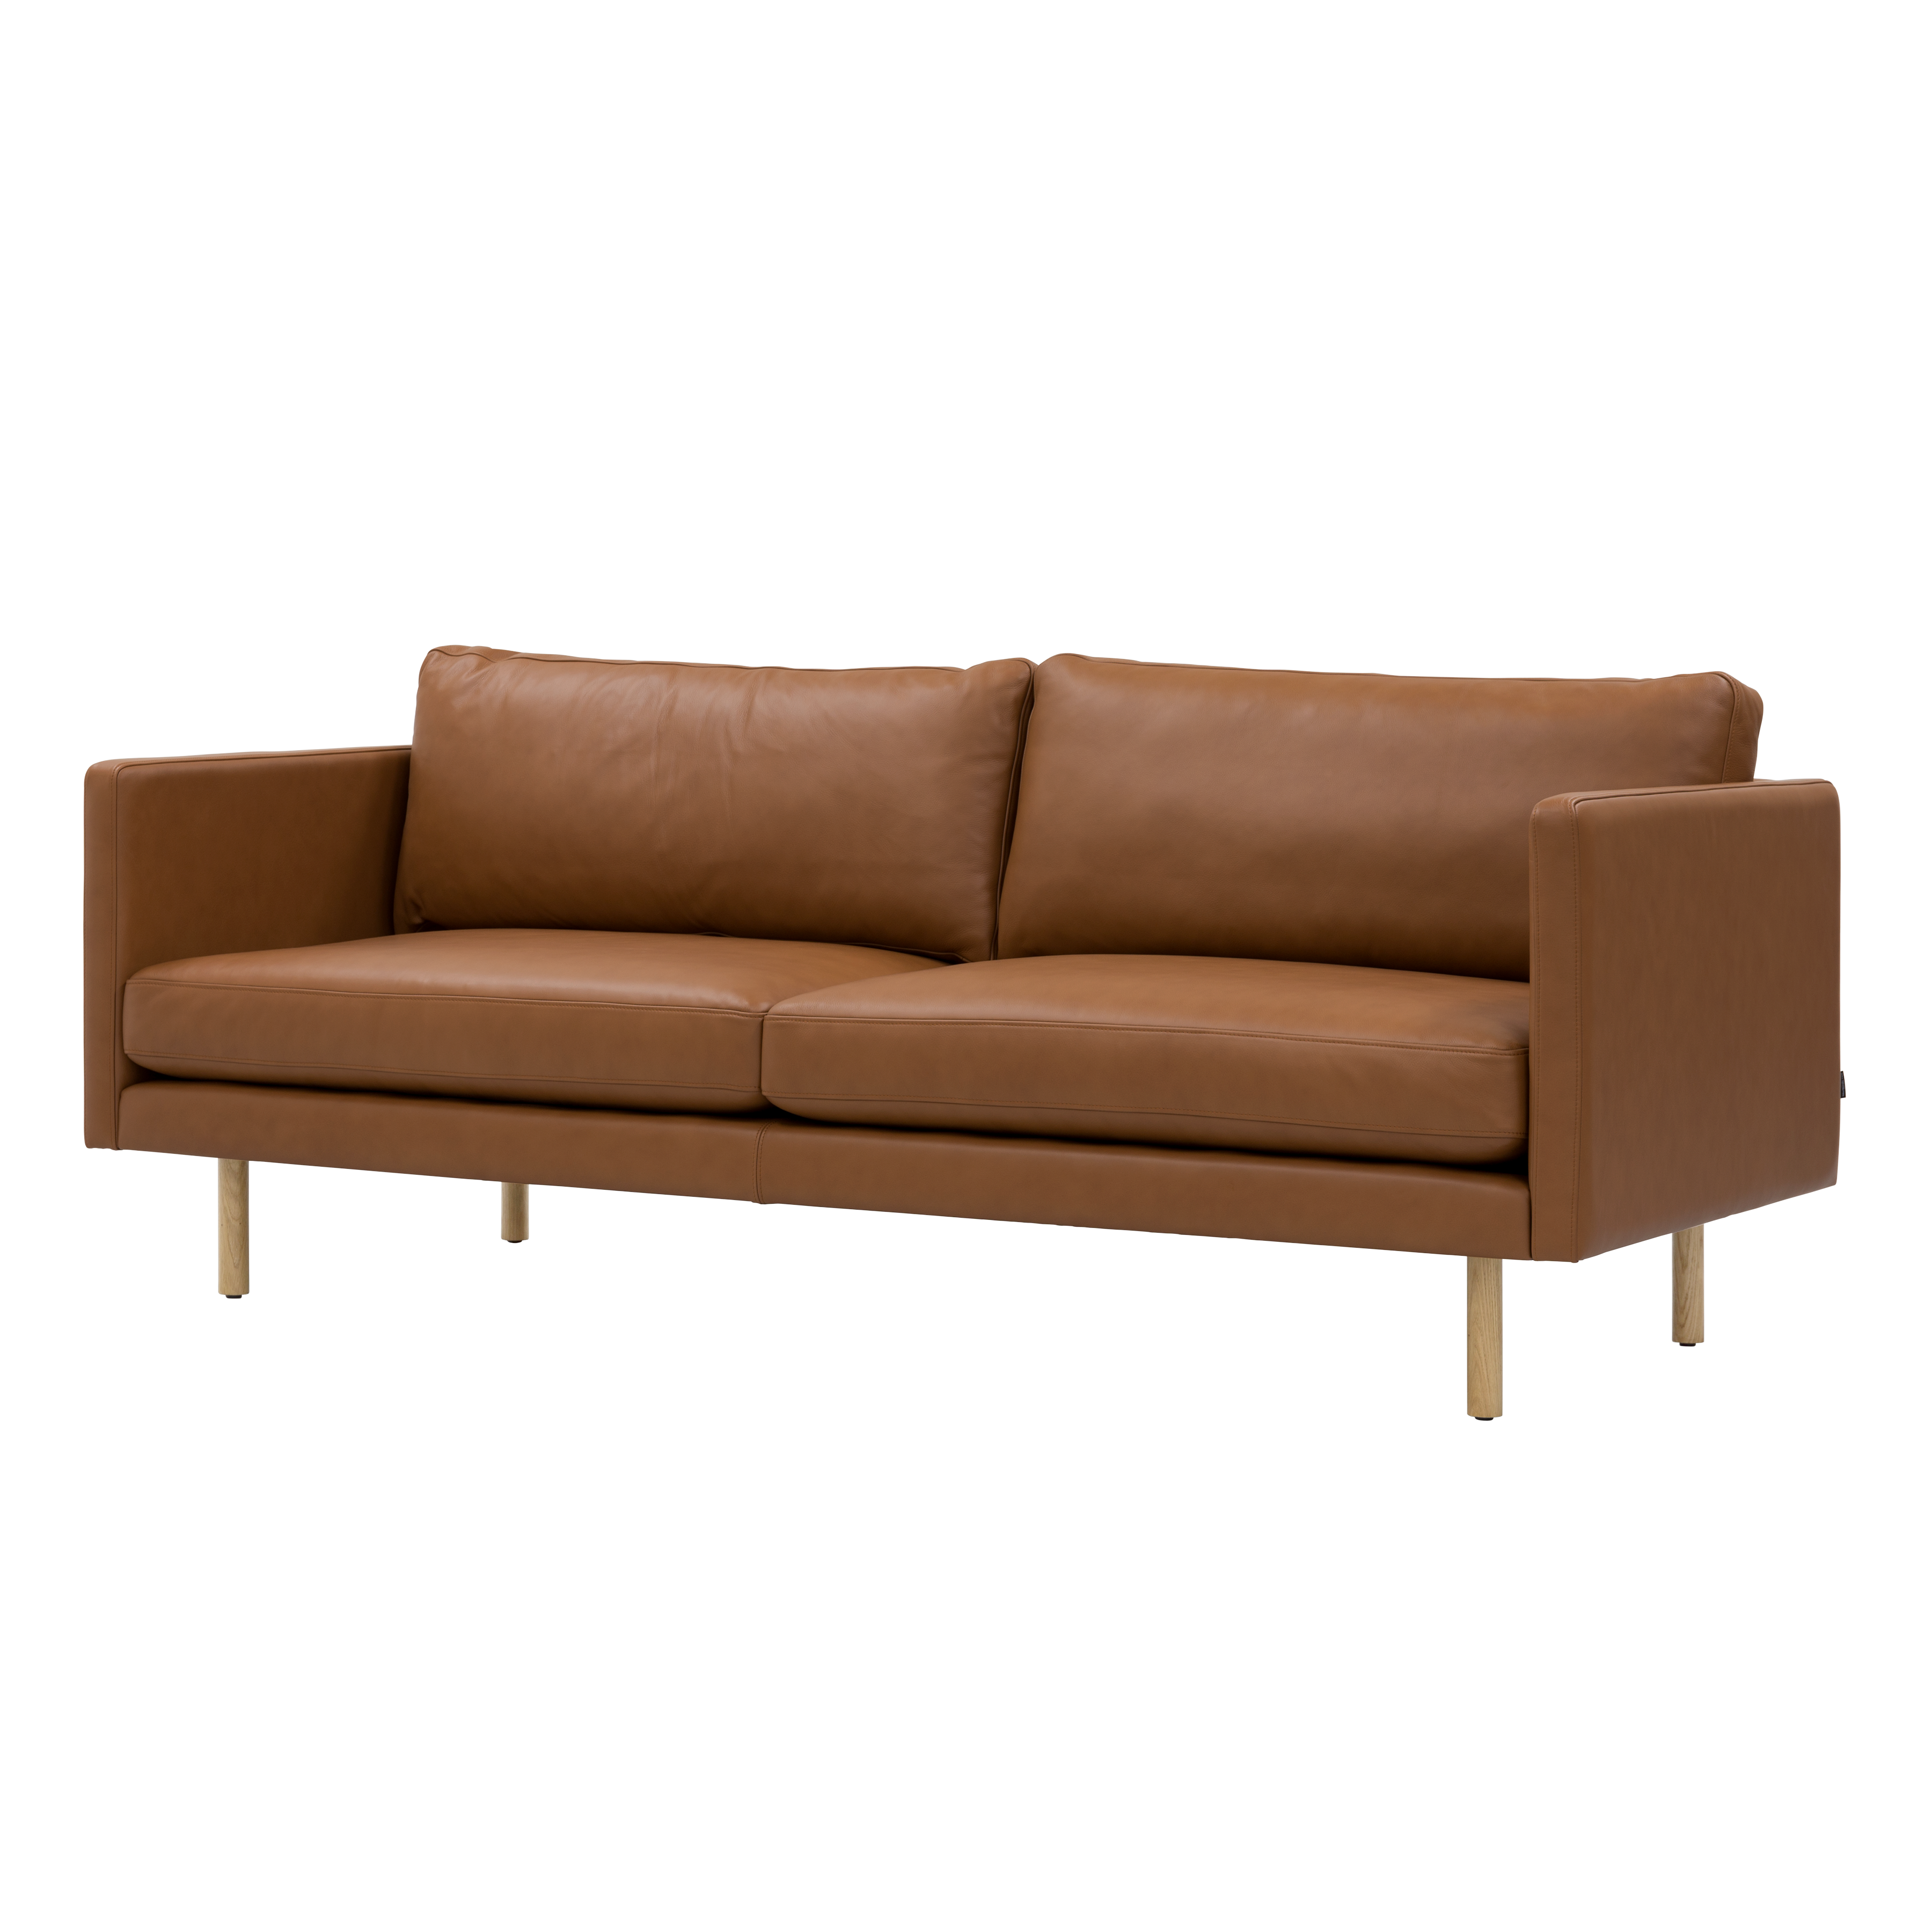 Sofa Png Free Download Best Sofa Png On Clipartmag Com